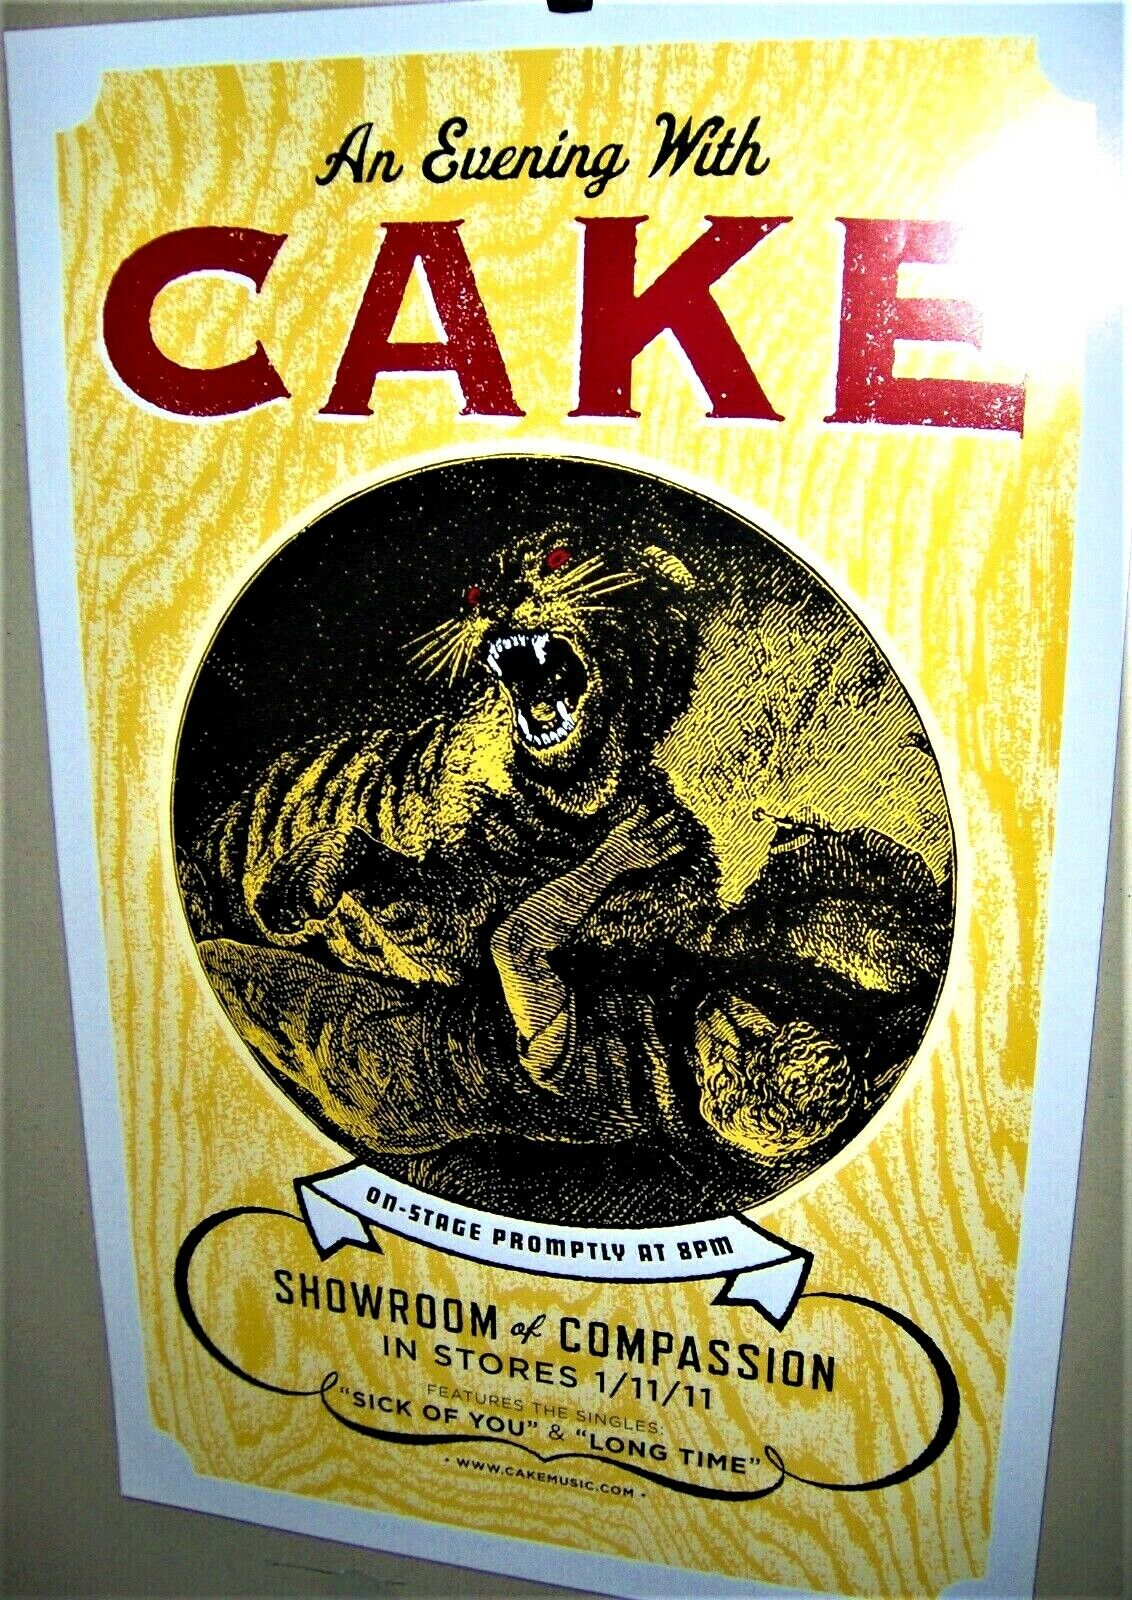 CAKE An Evening With CAKE DS Original Promo Poster Showroom Of Comassion COOL - $30.00